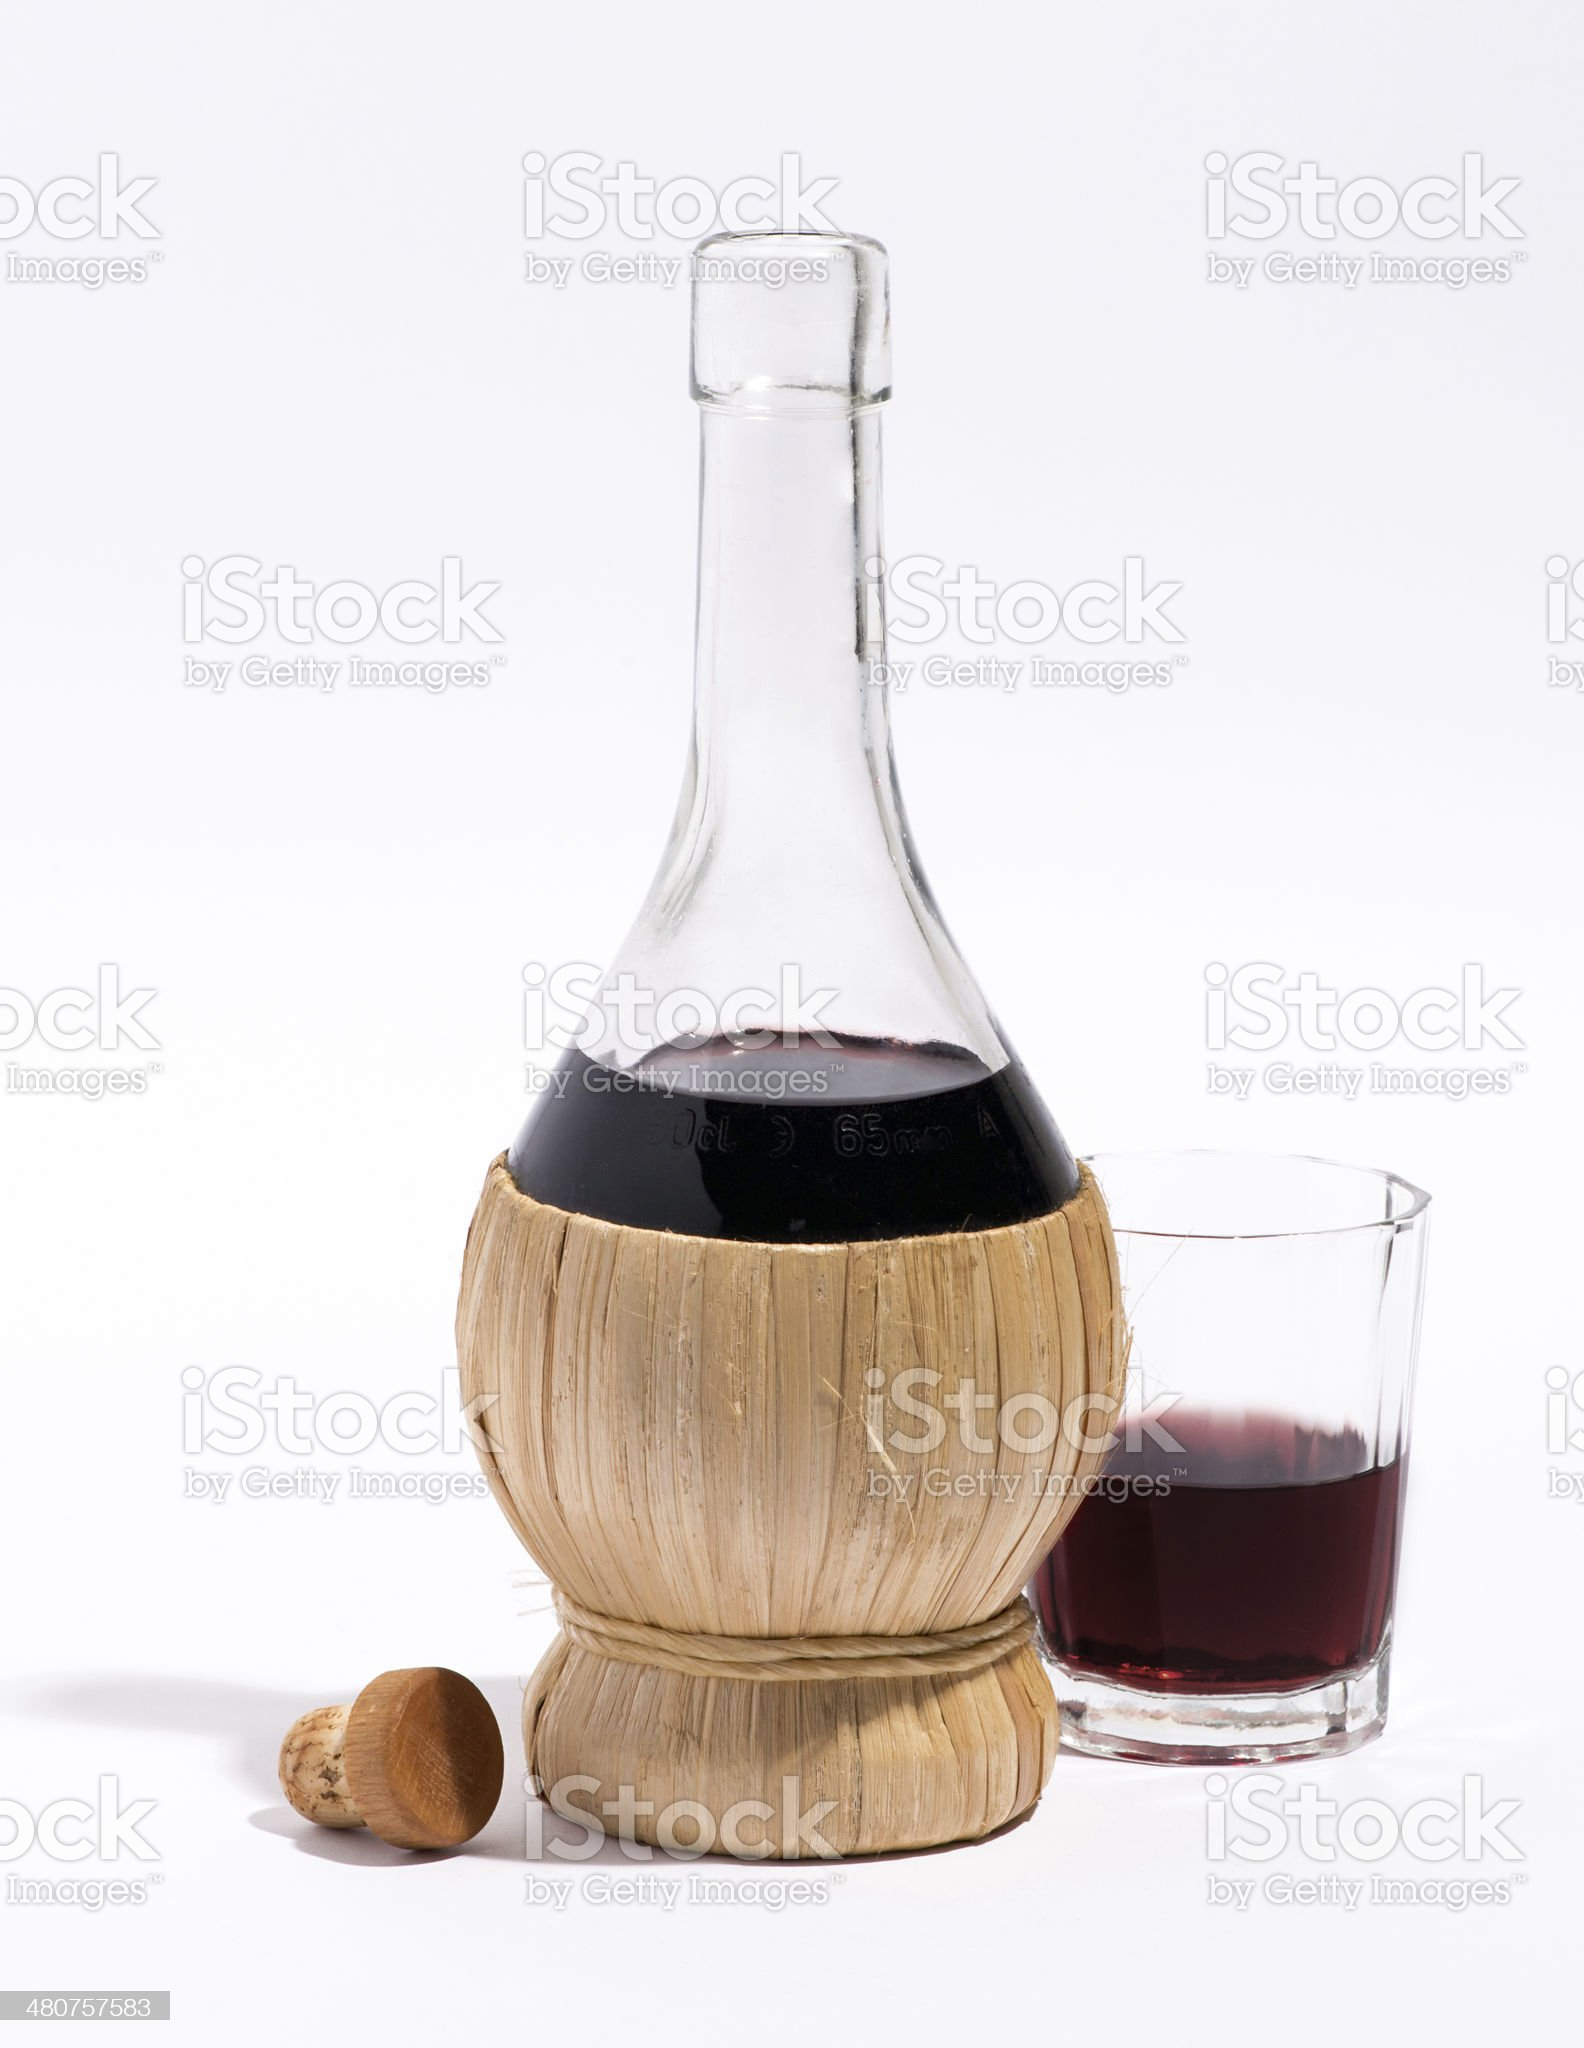 Flask or carafe of red wine royalty-free stock photo